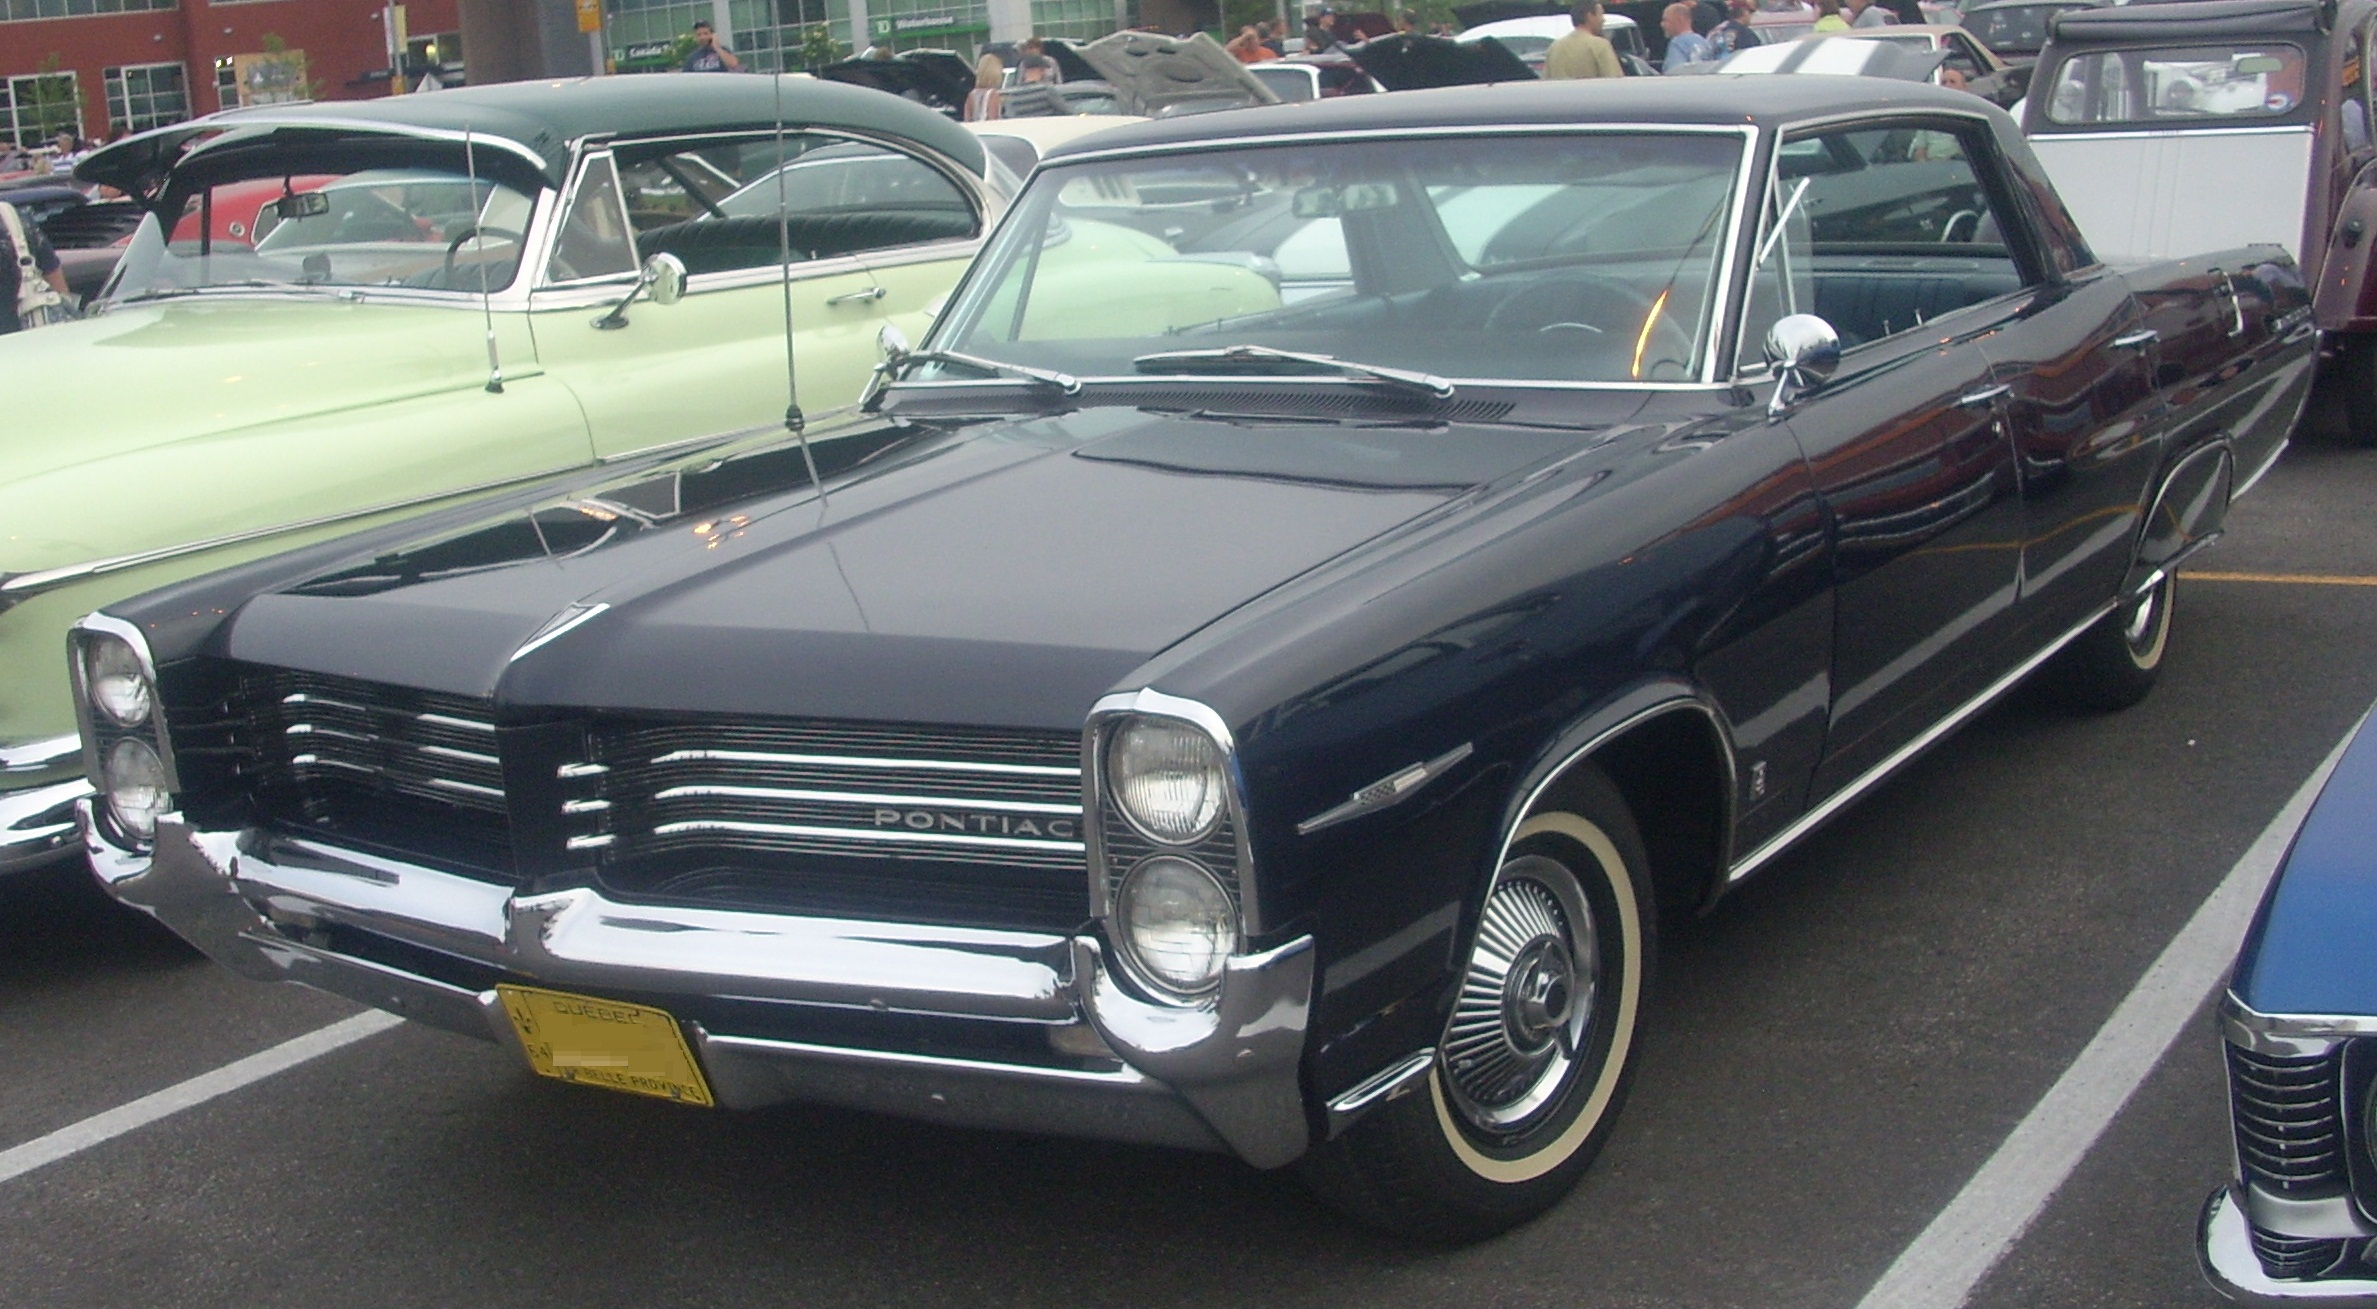 Pontiac parisienne photo - 1